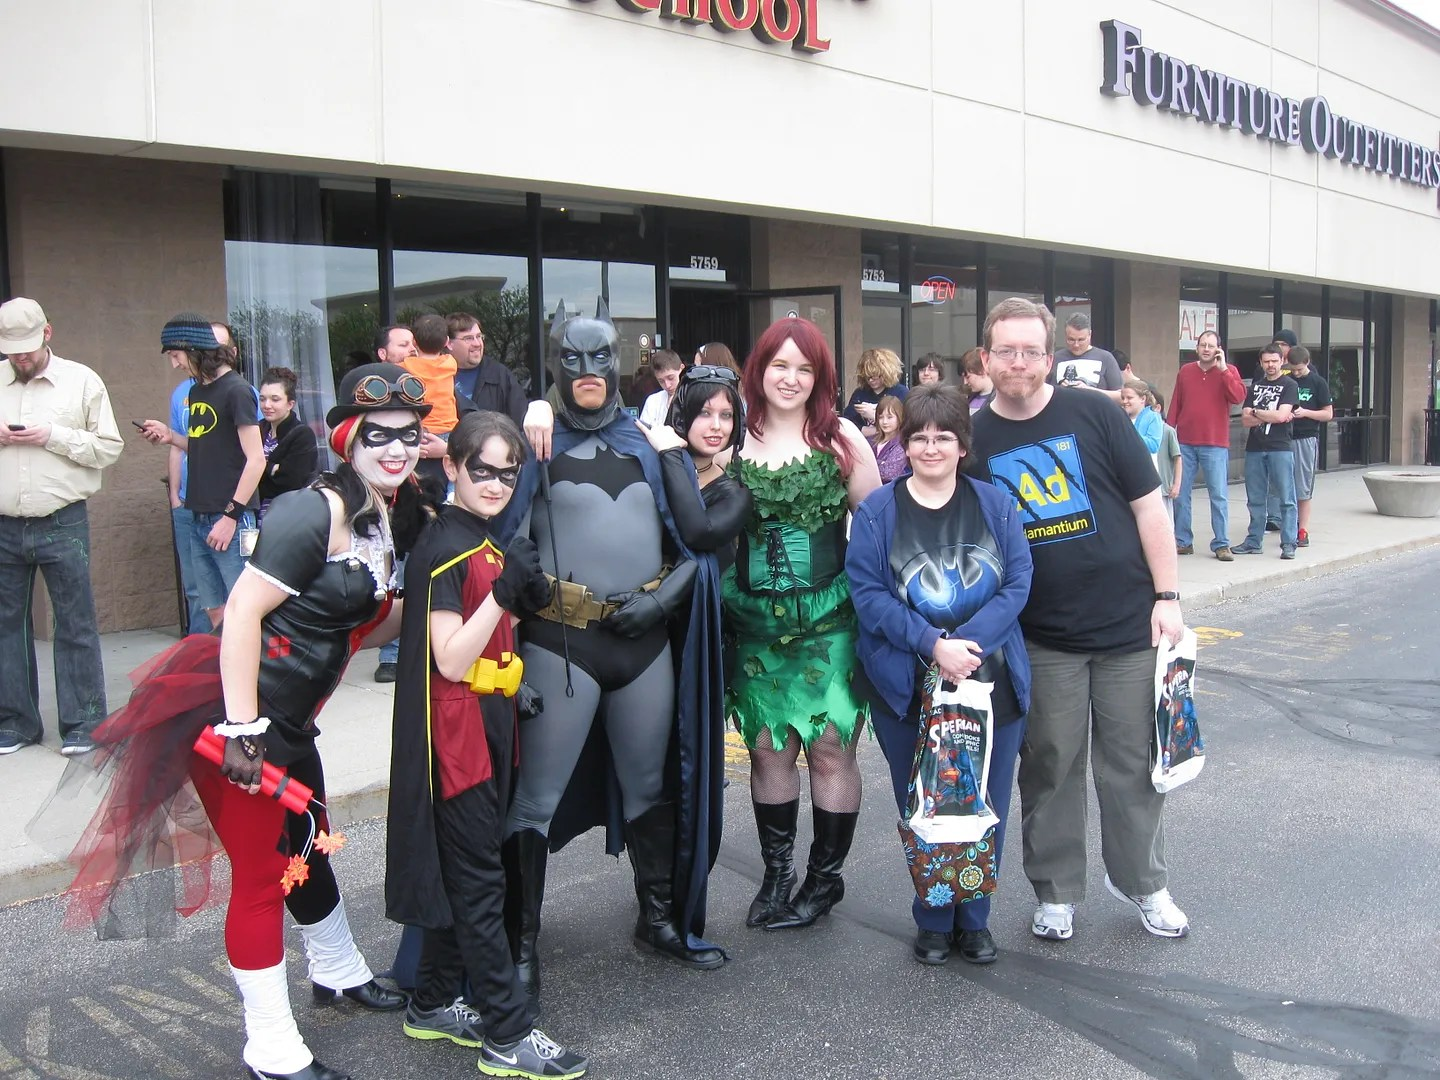 Free Comic Book Day, costumes, DC Comics, 2013